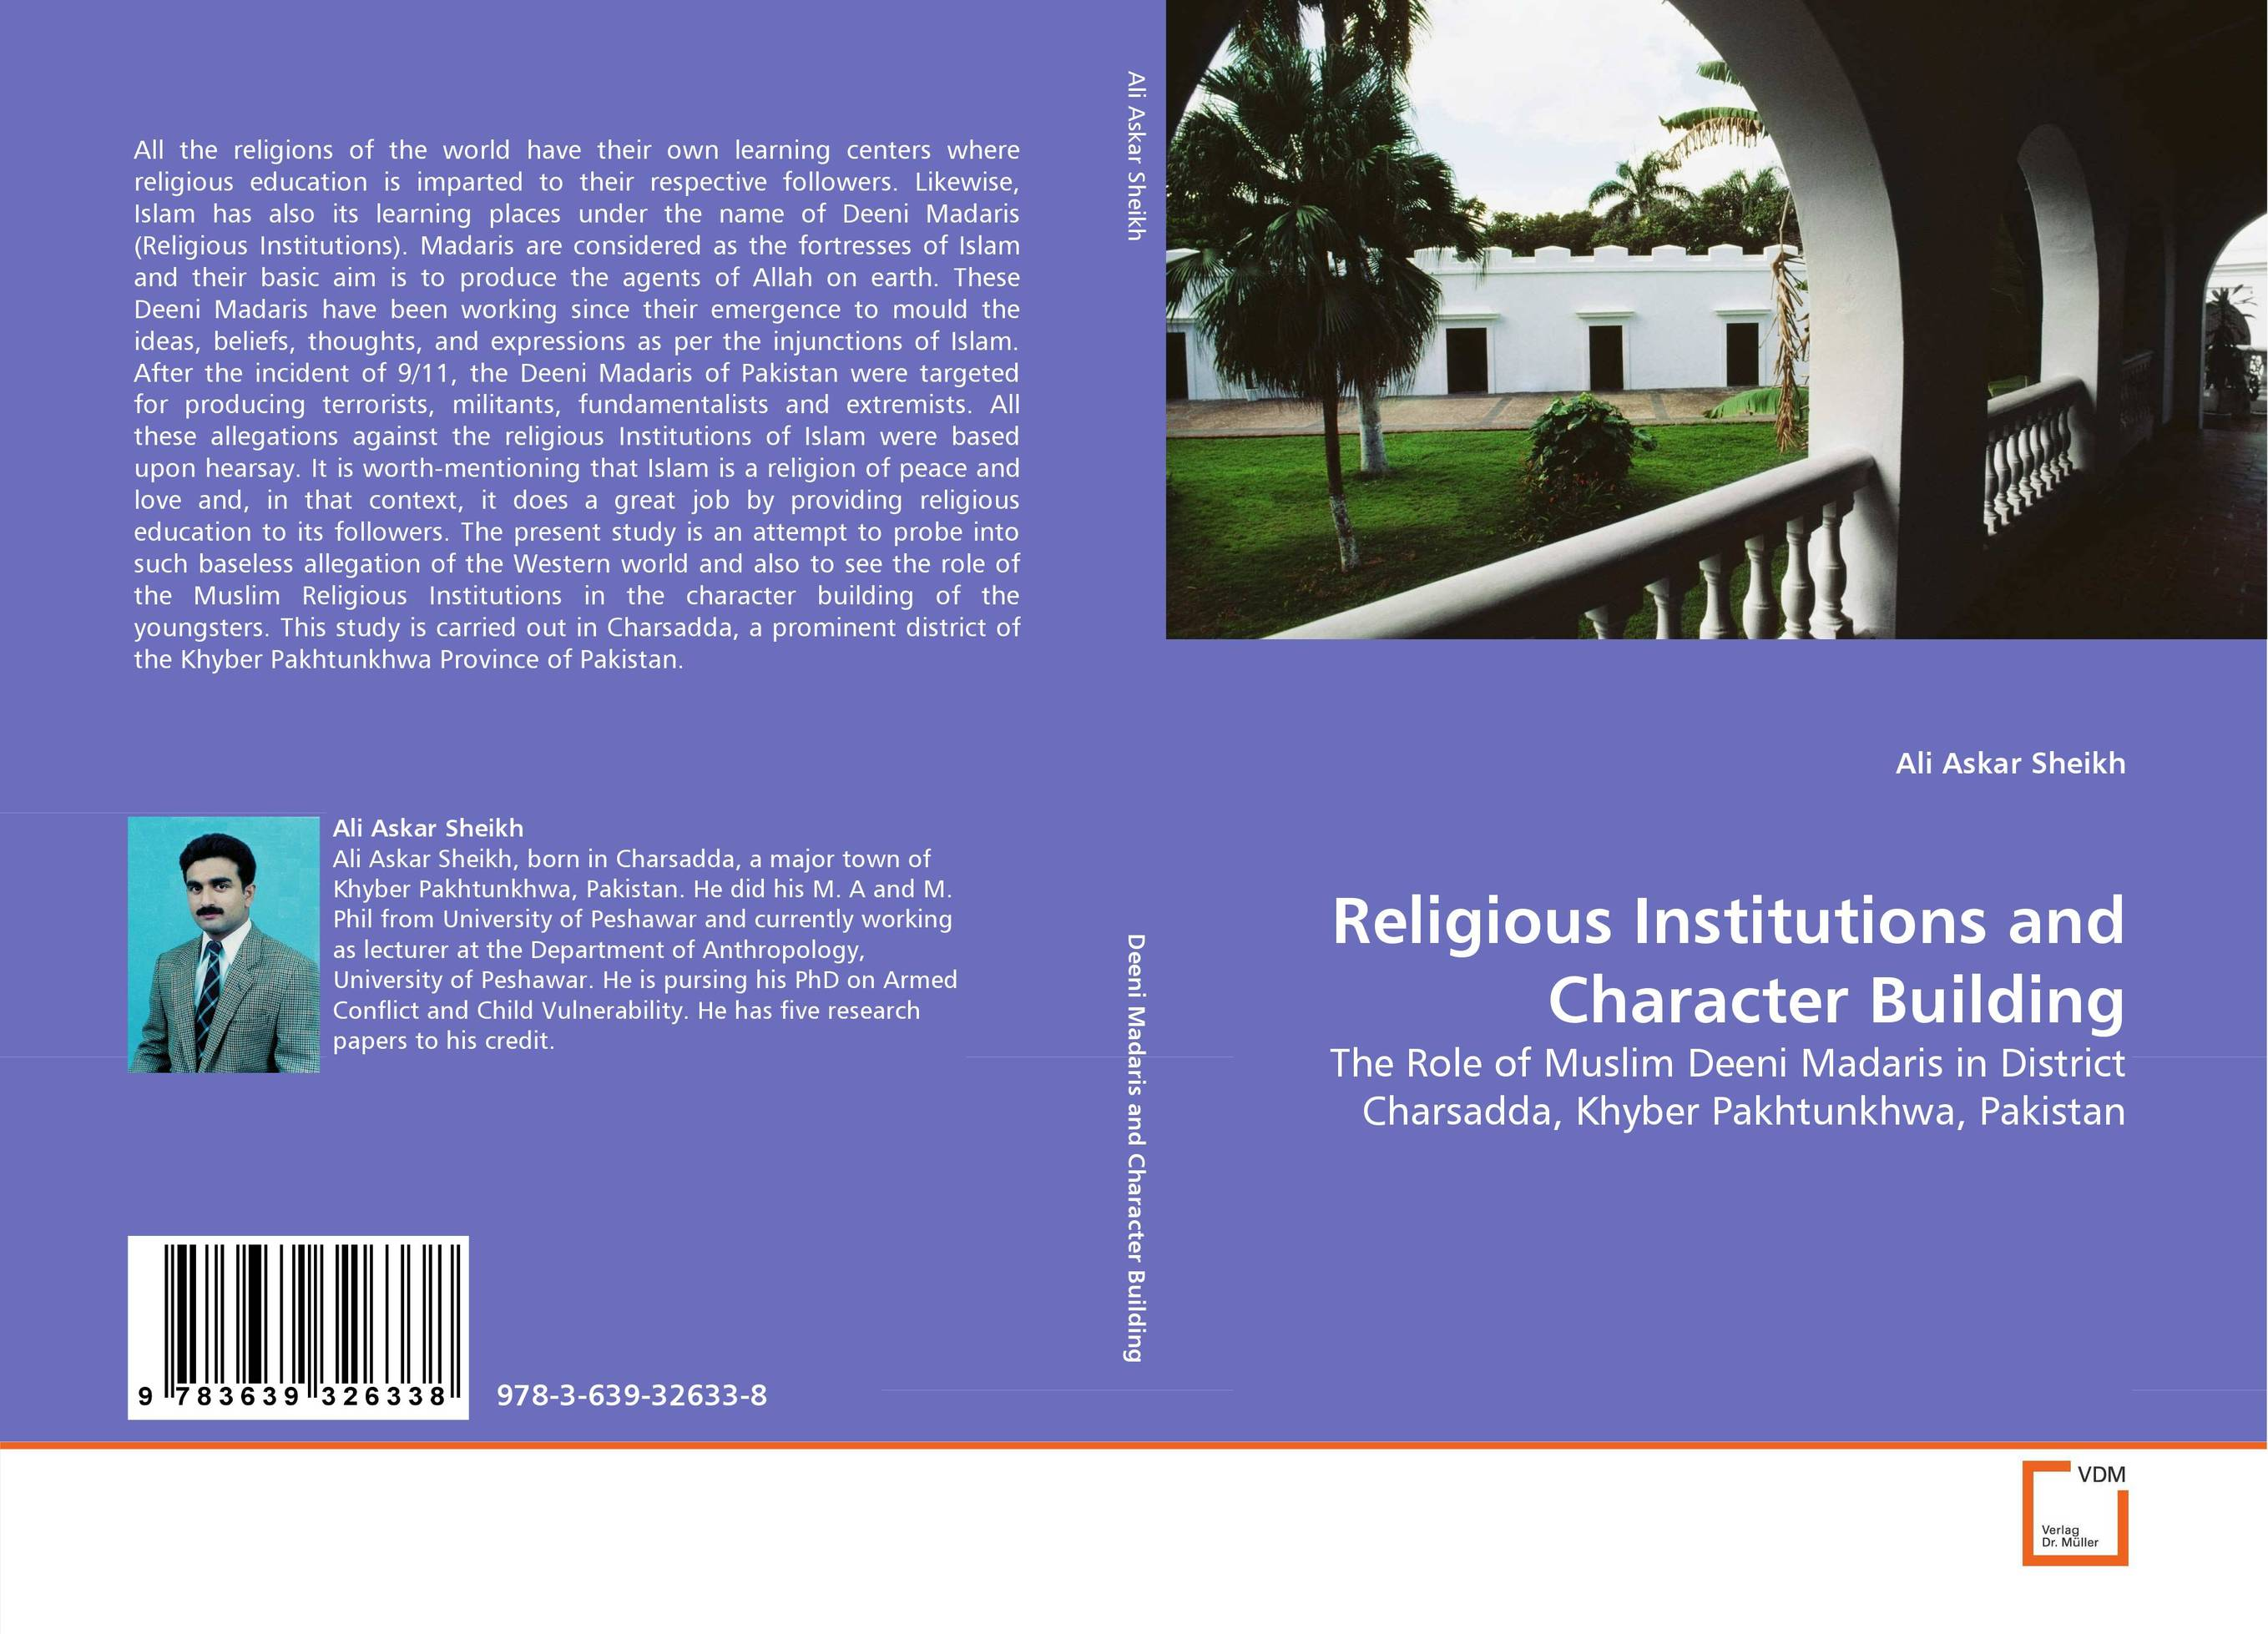 Religious Institutions and Character Building religious institutions and character building